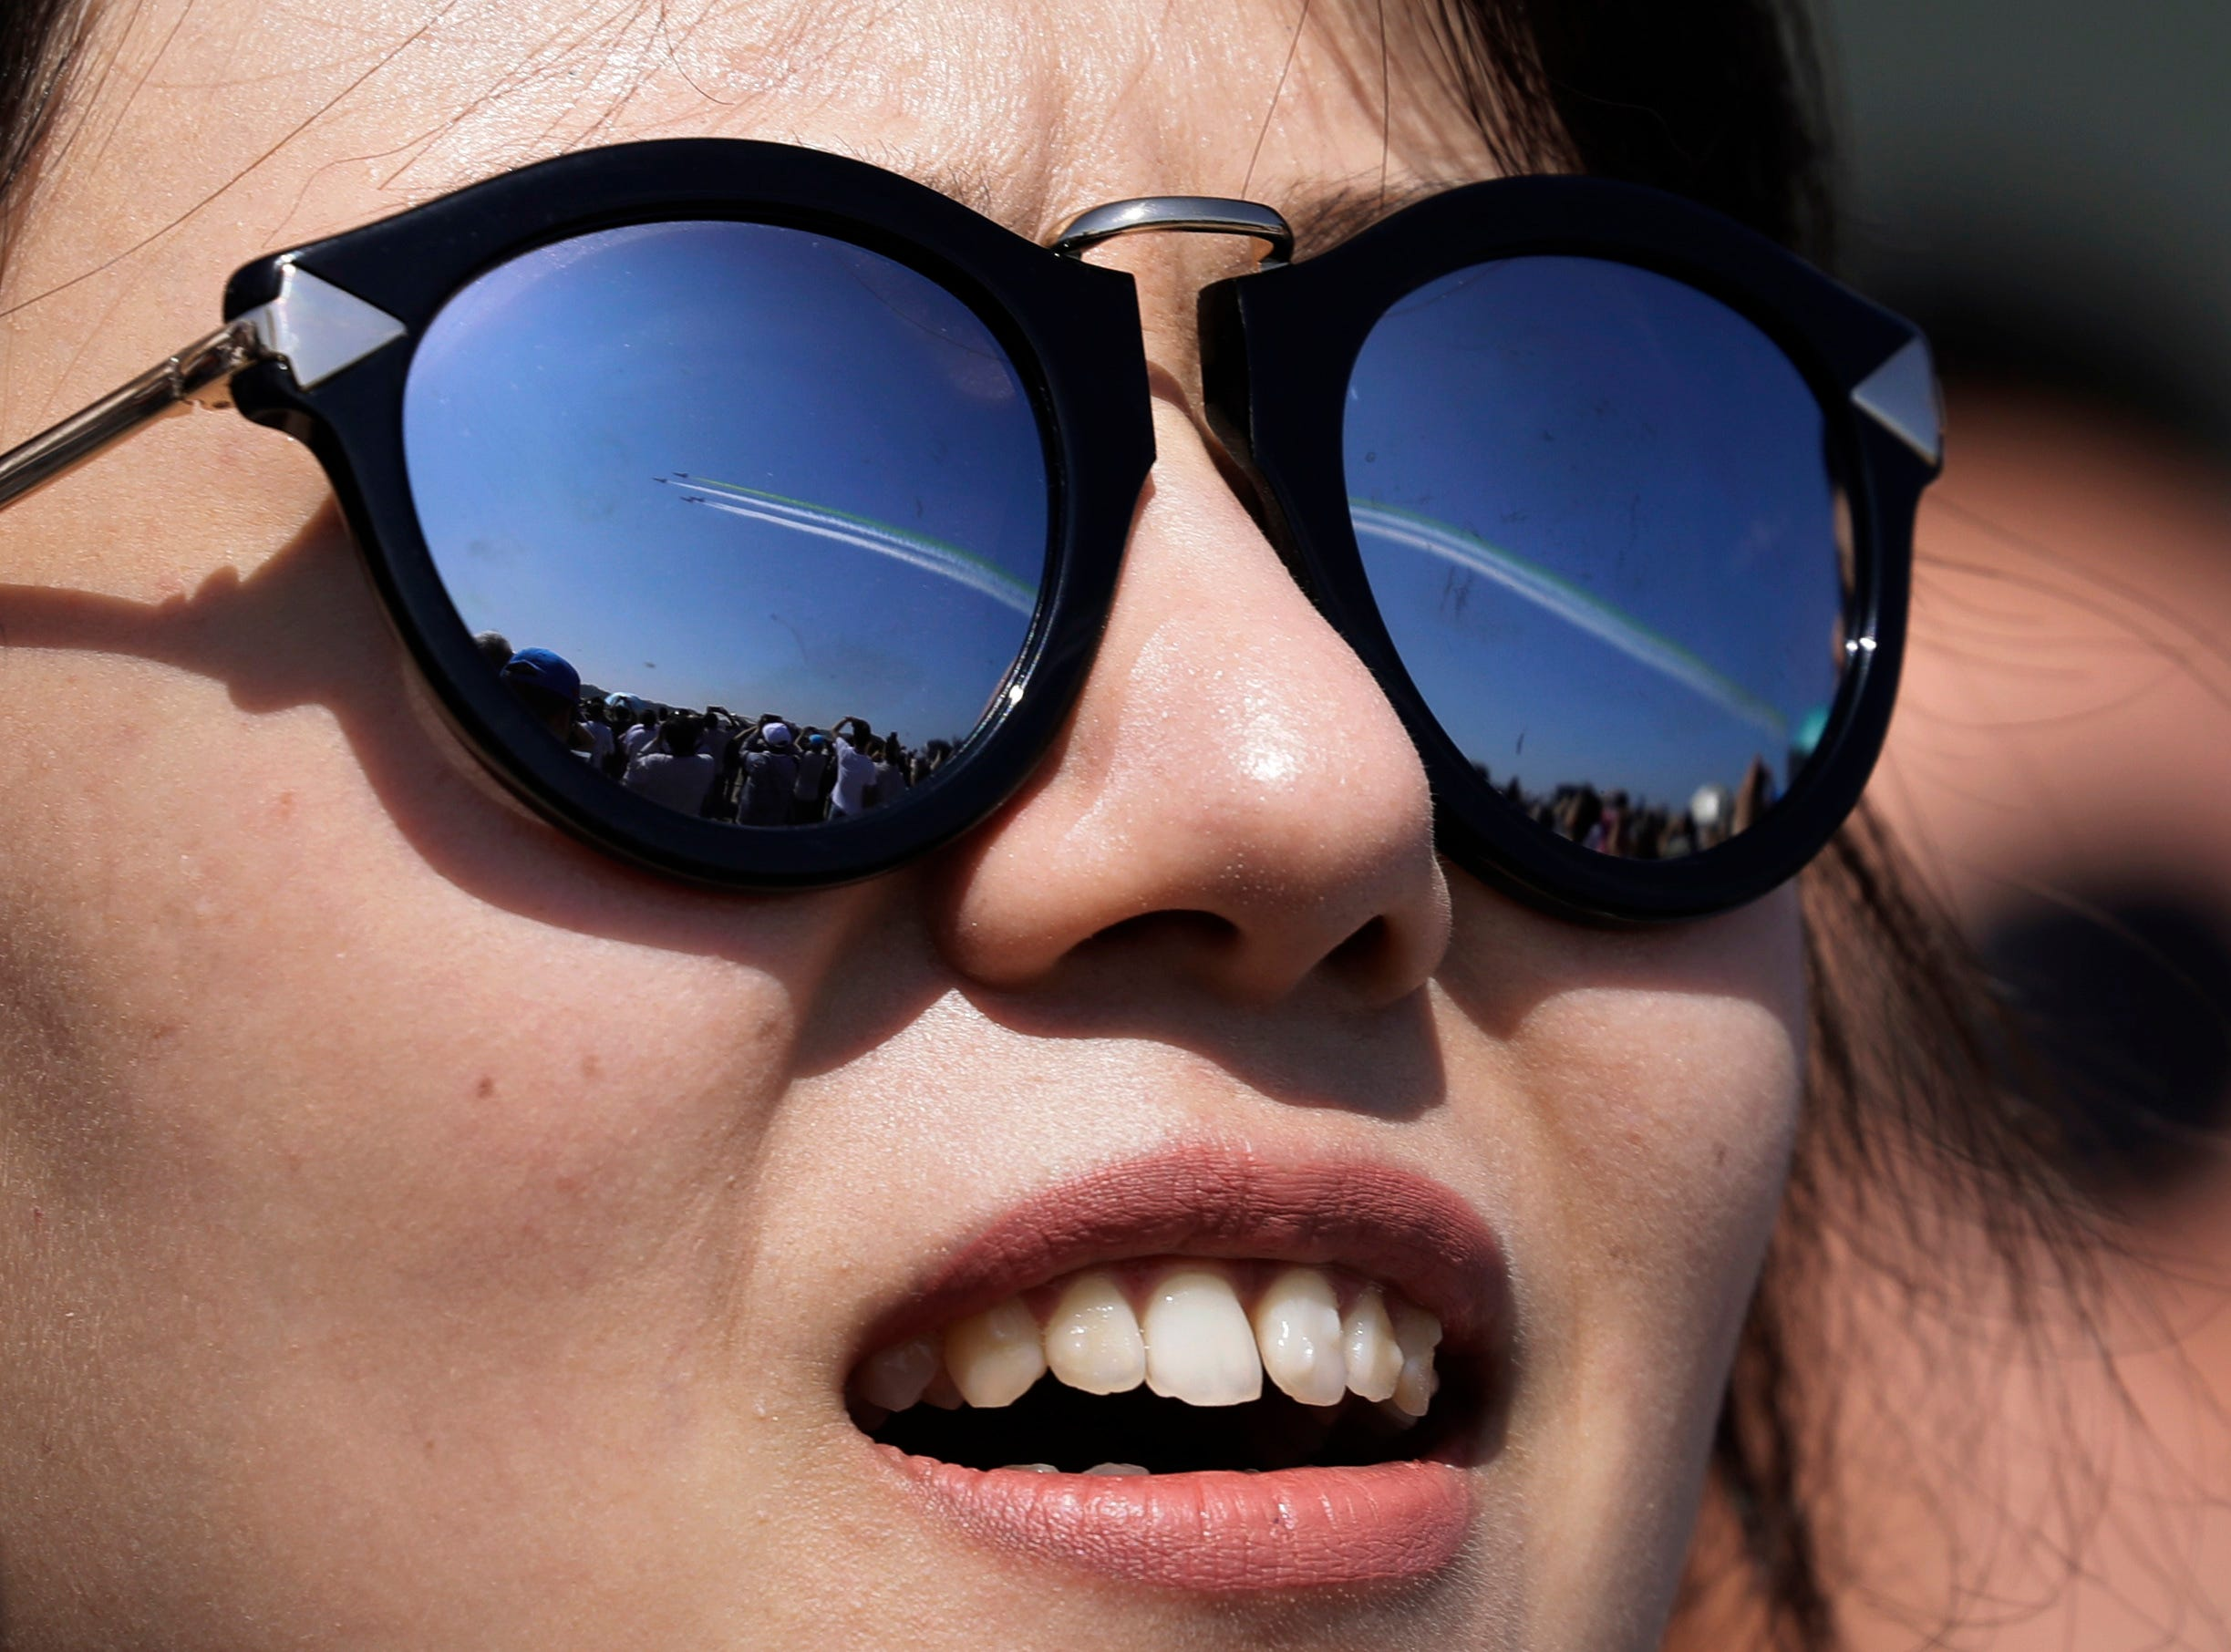 A spectator's sunglasses reflect China's K-8 aircrafts performing at the 12th China International Aviation and Aerospace Exhibition in Zhuhai city, south China's Guangdong province, Wednesday, Nov. 7, 2018.